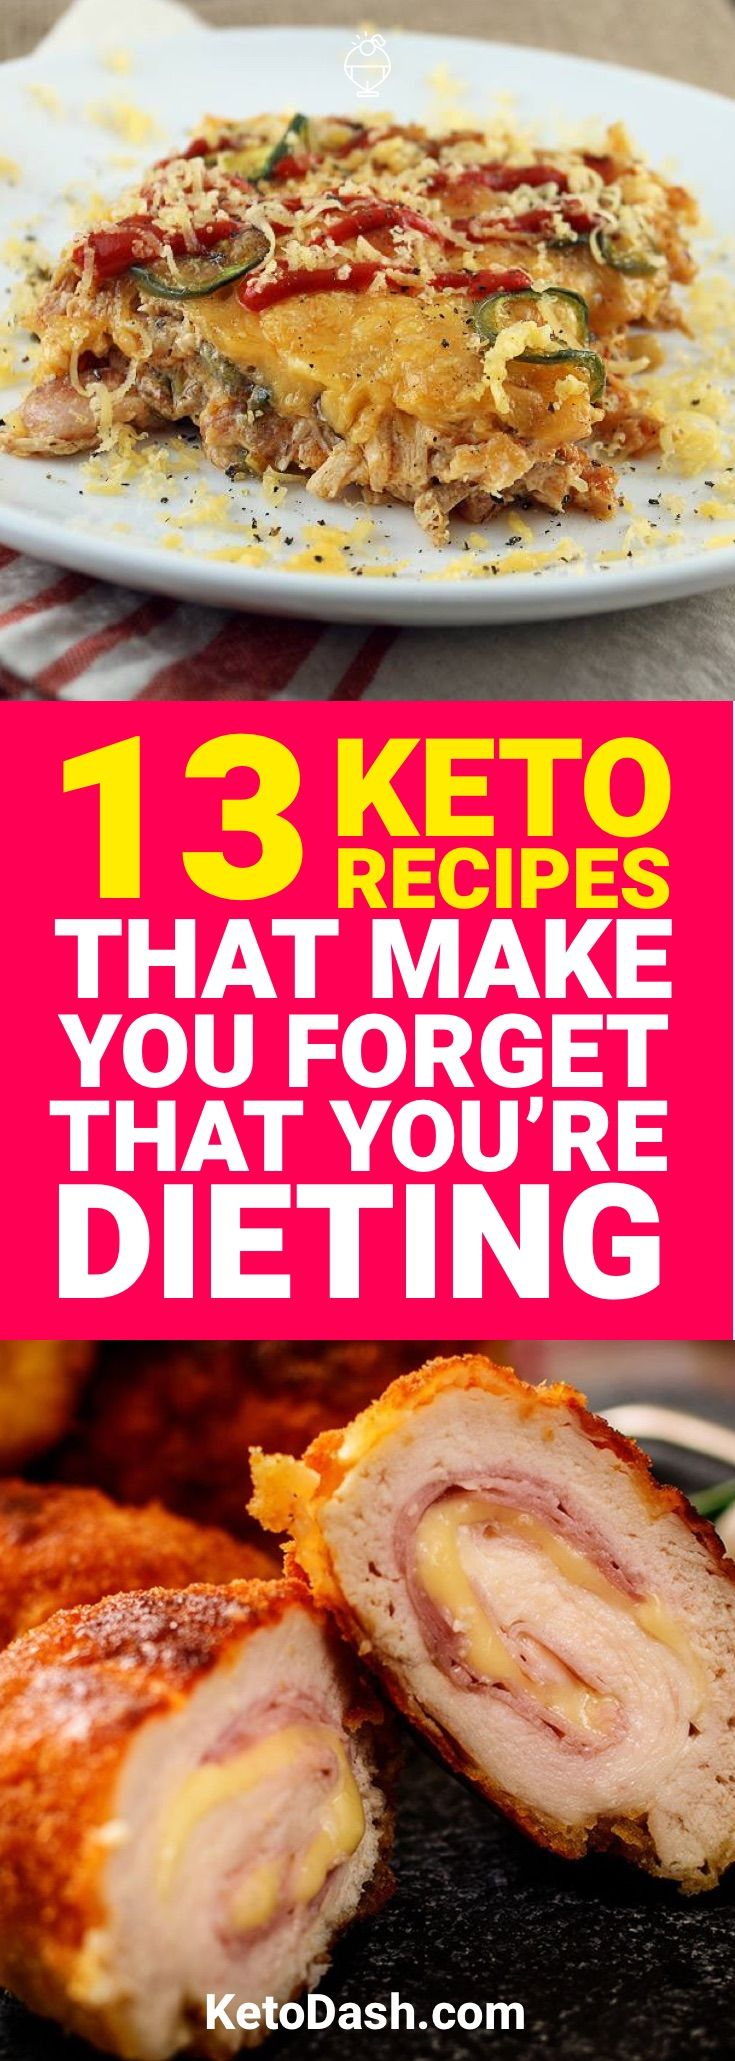 Being on a diet never sounds fun. Luckily, here are 13 keto recipes that will make you forget you're dieting.